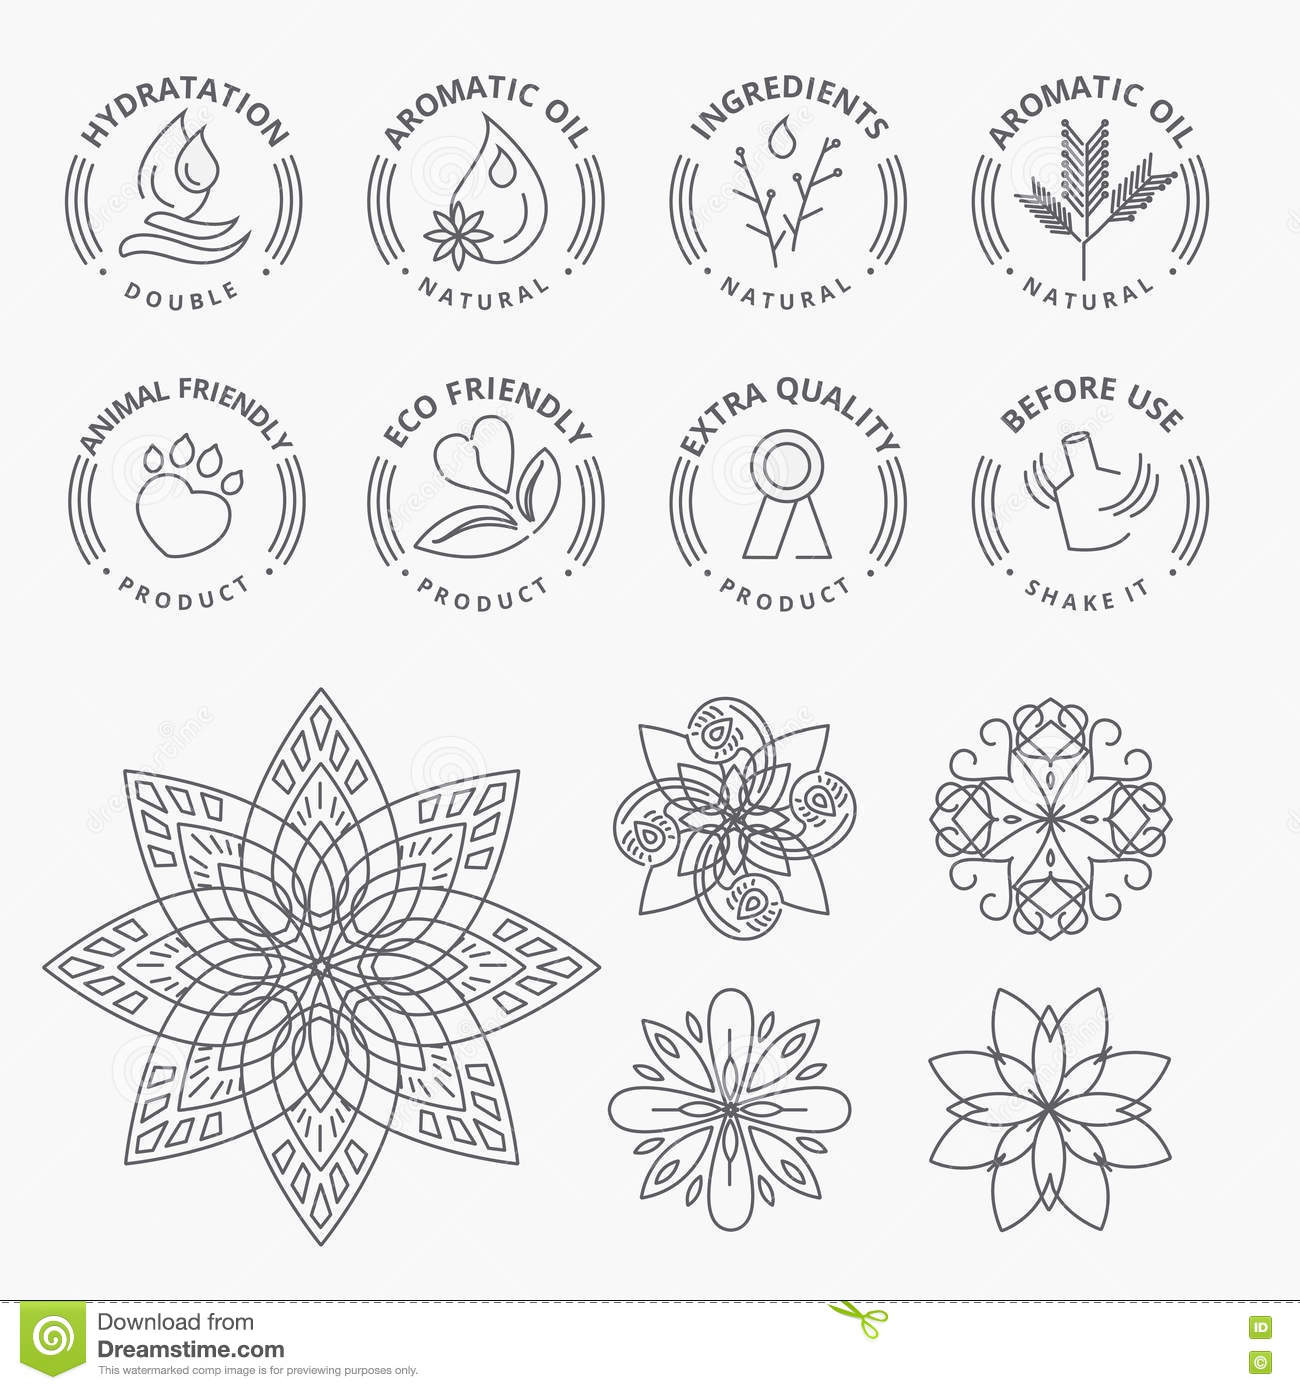 Set of stickers and elements for natural products, beauty and cosmetics